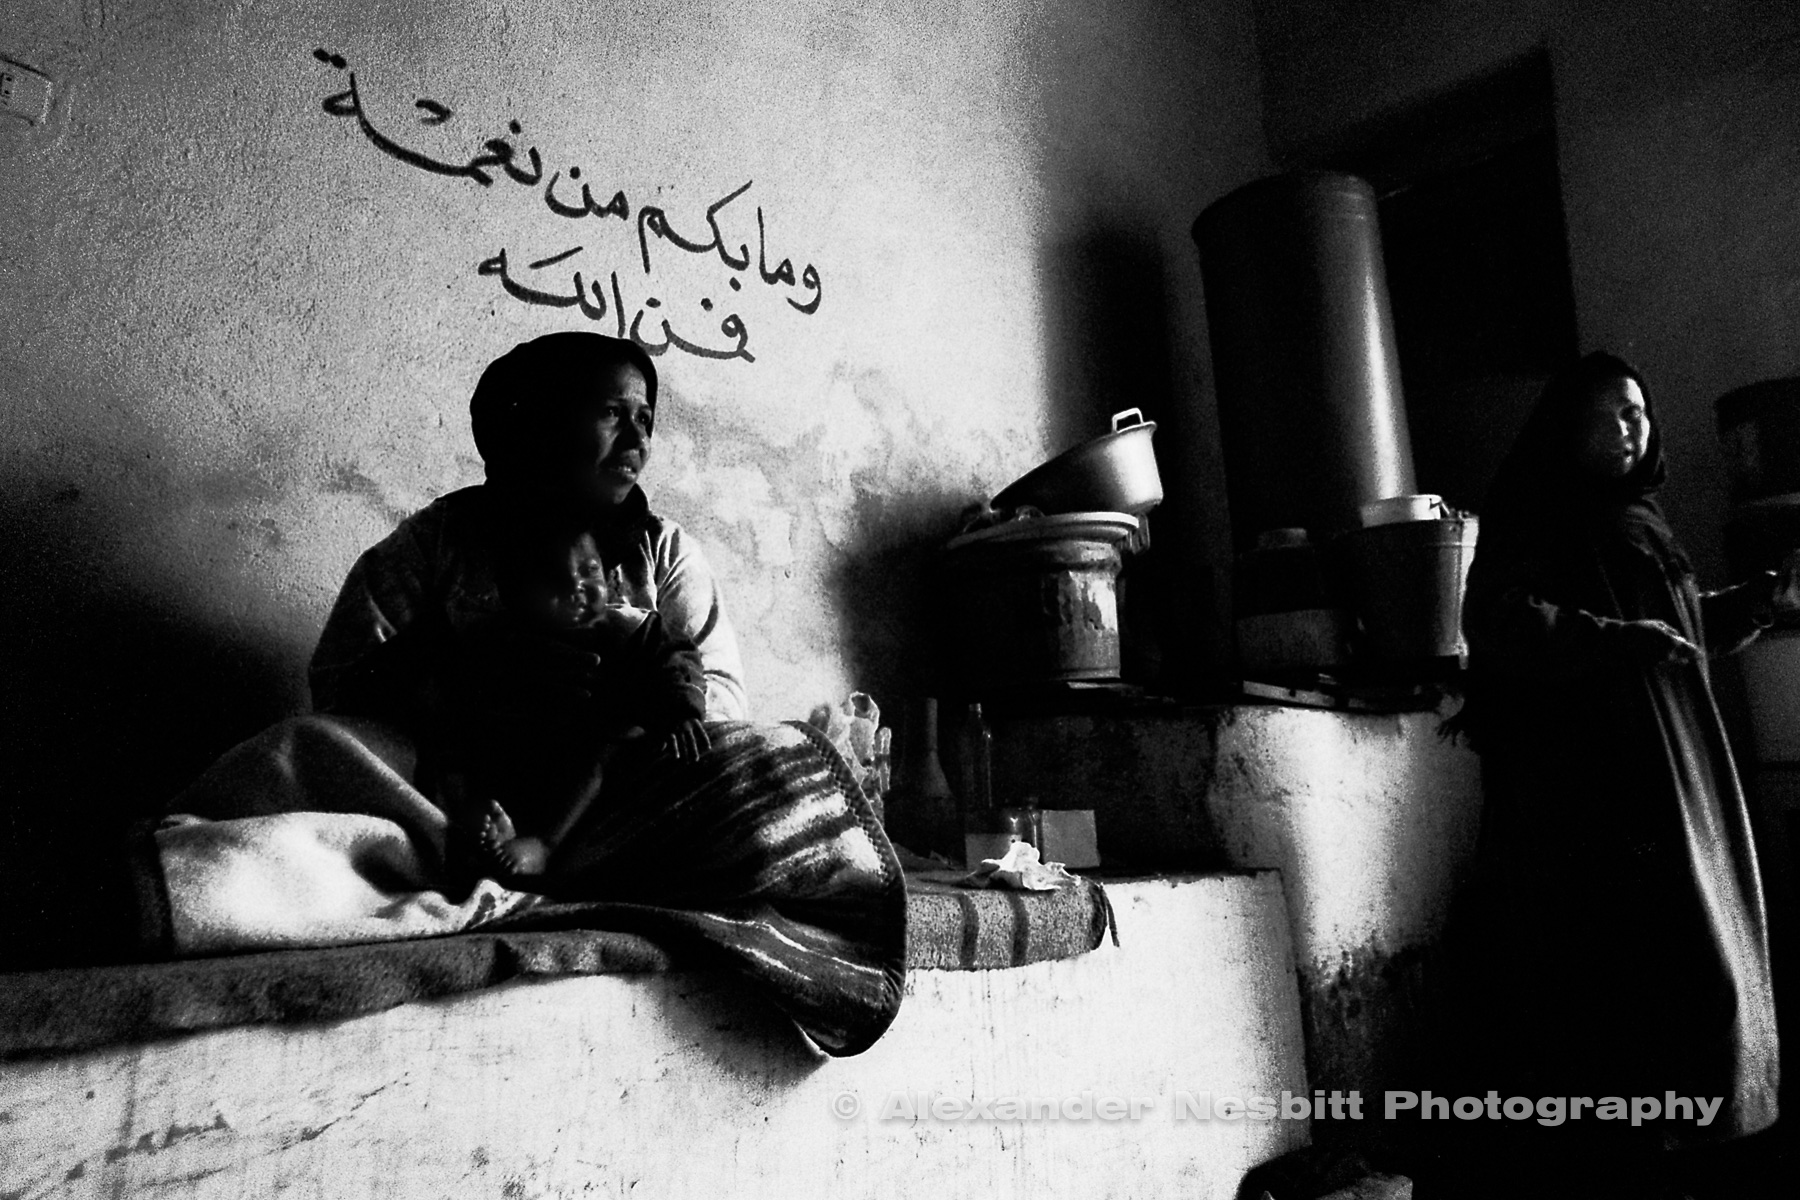 City of the Dead, Cairo - Hassan's daughter in their home.